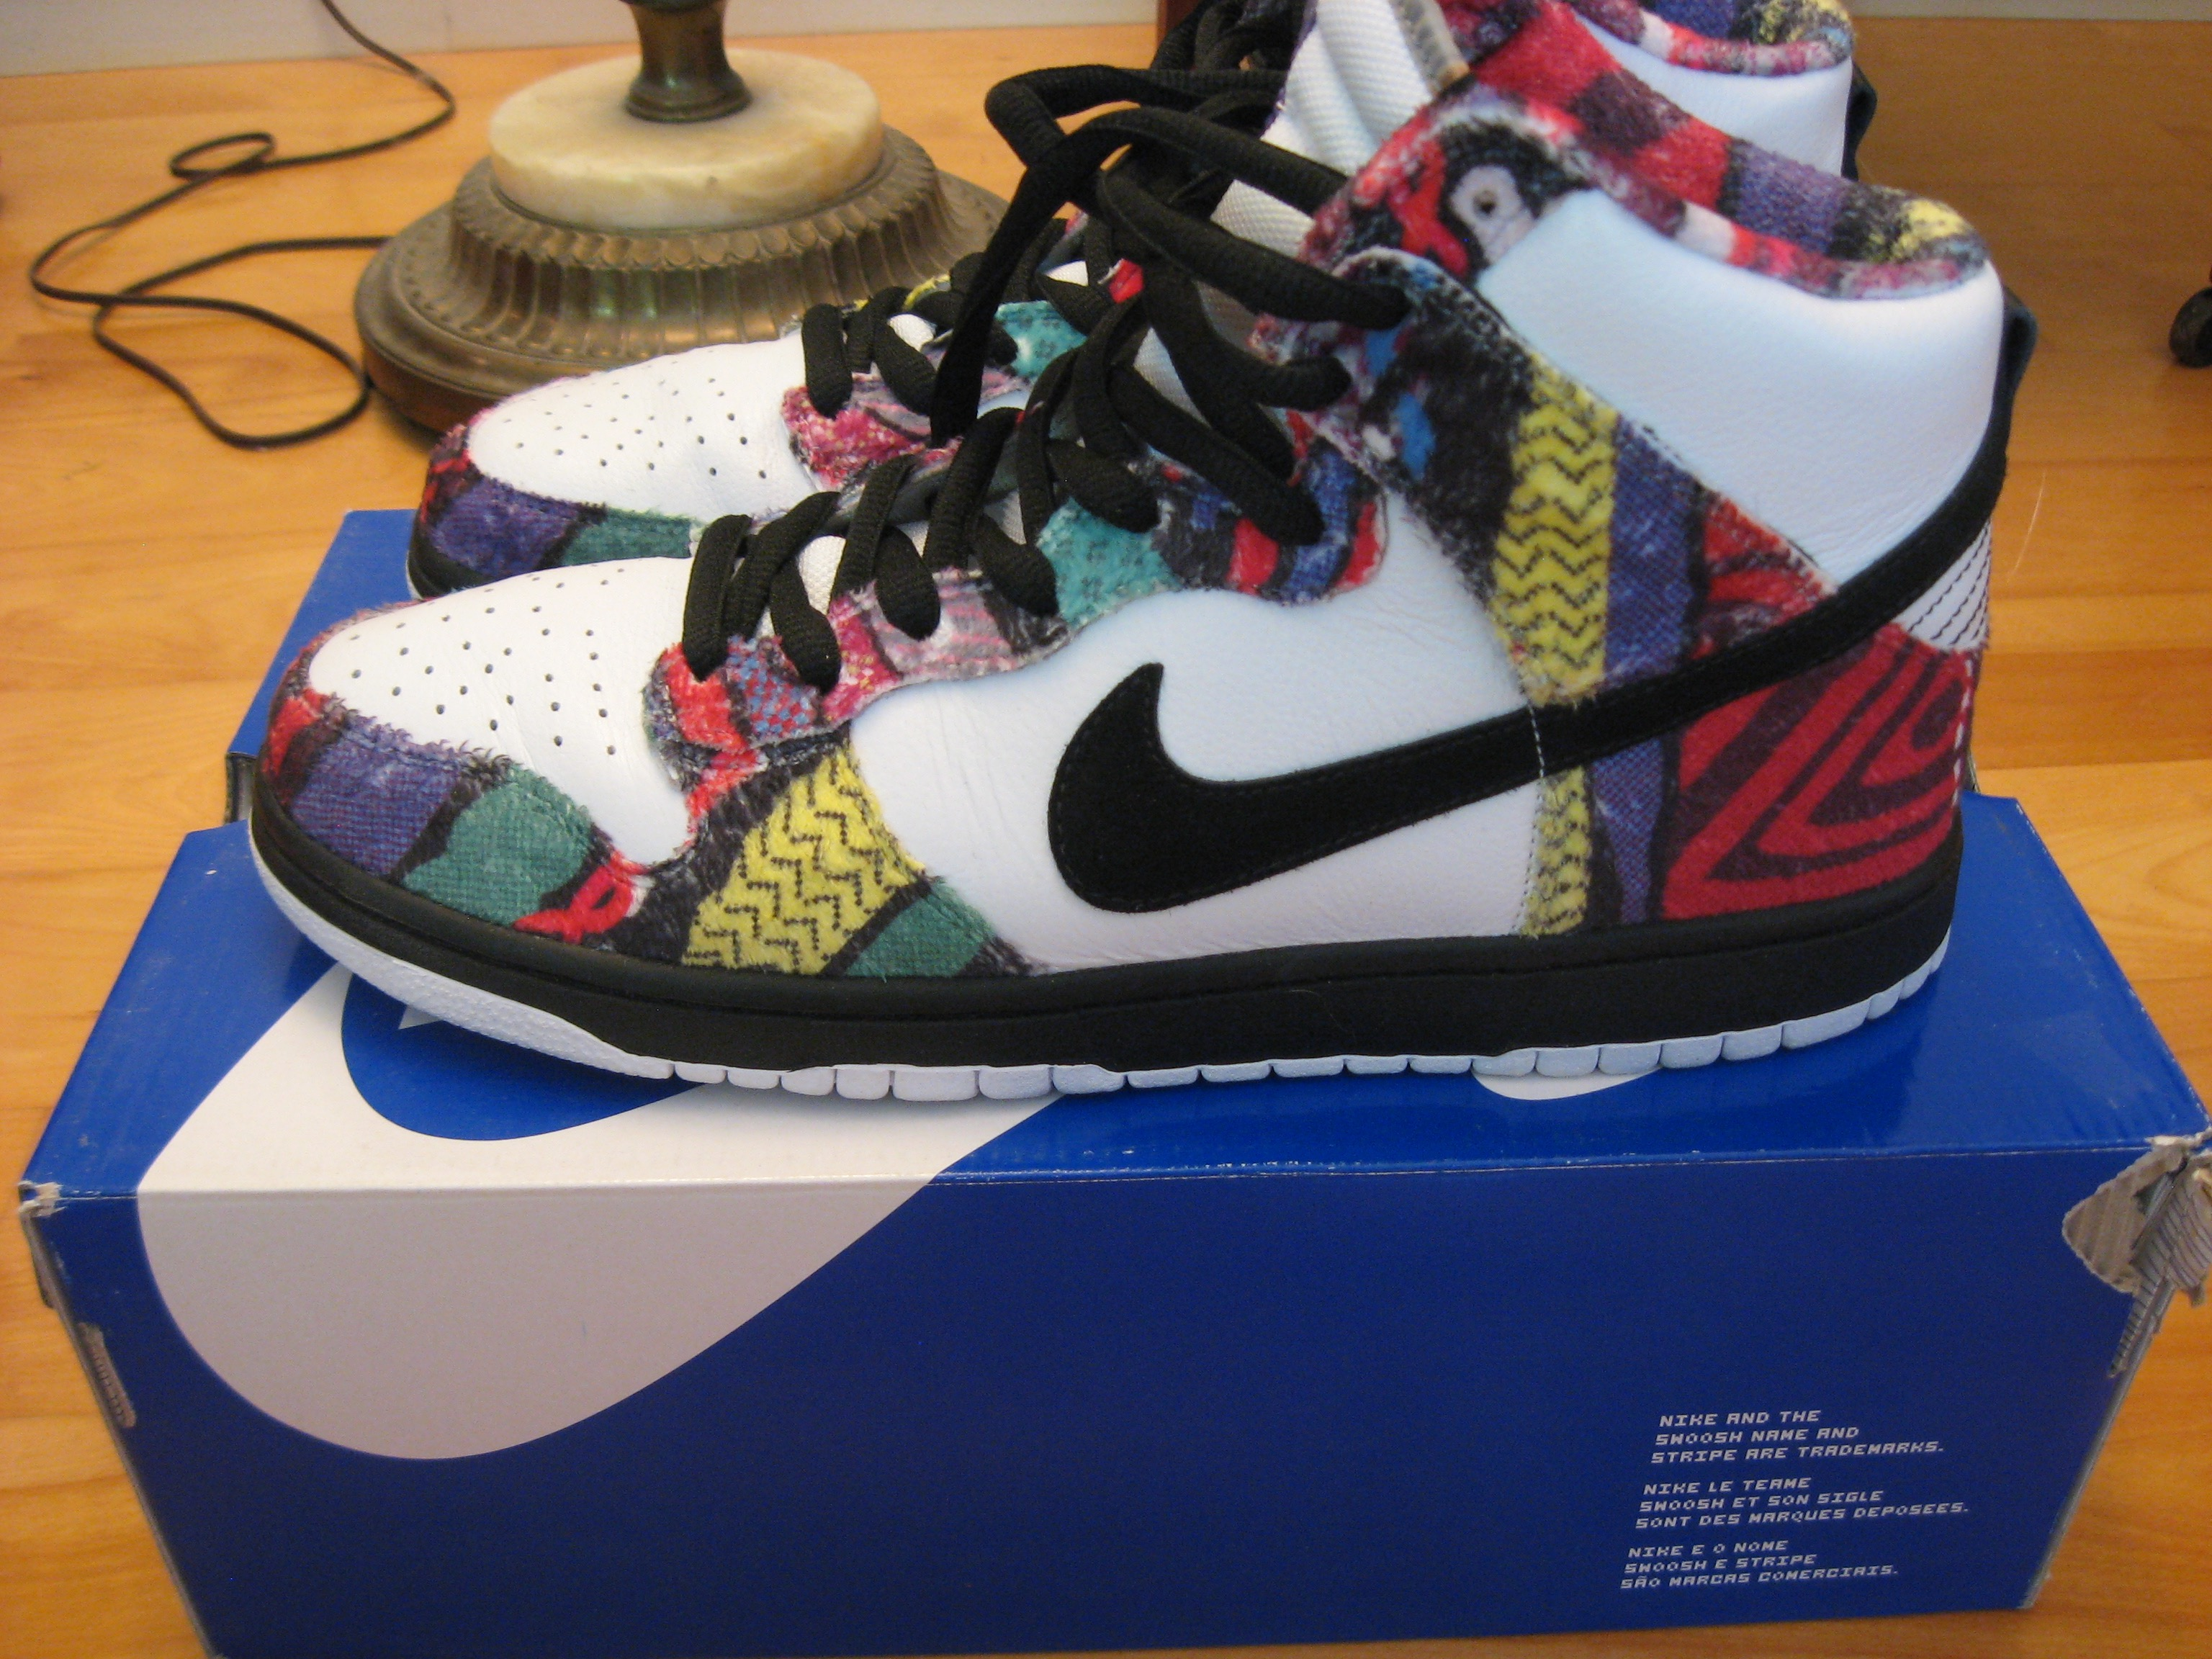 wholesale dealer b7f74 33fd7 Nike VNDS Sz.11 Nike SB Dunk High Cosby Huxtable Coogi Sweater Size 11 - Hi-Top  Sneakers for Sale - Grailed